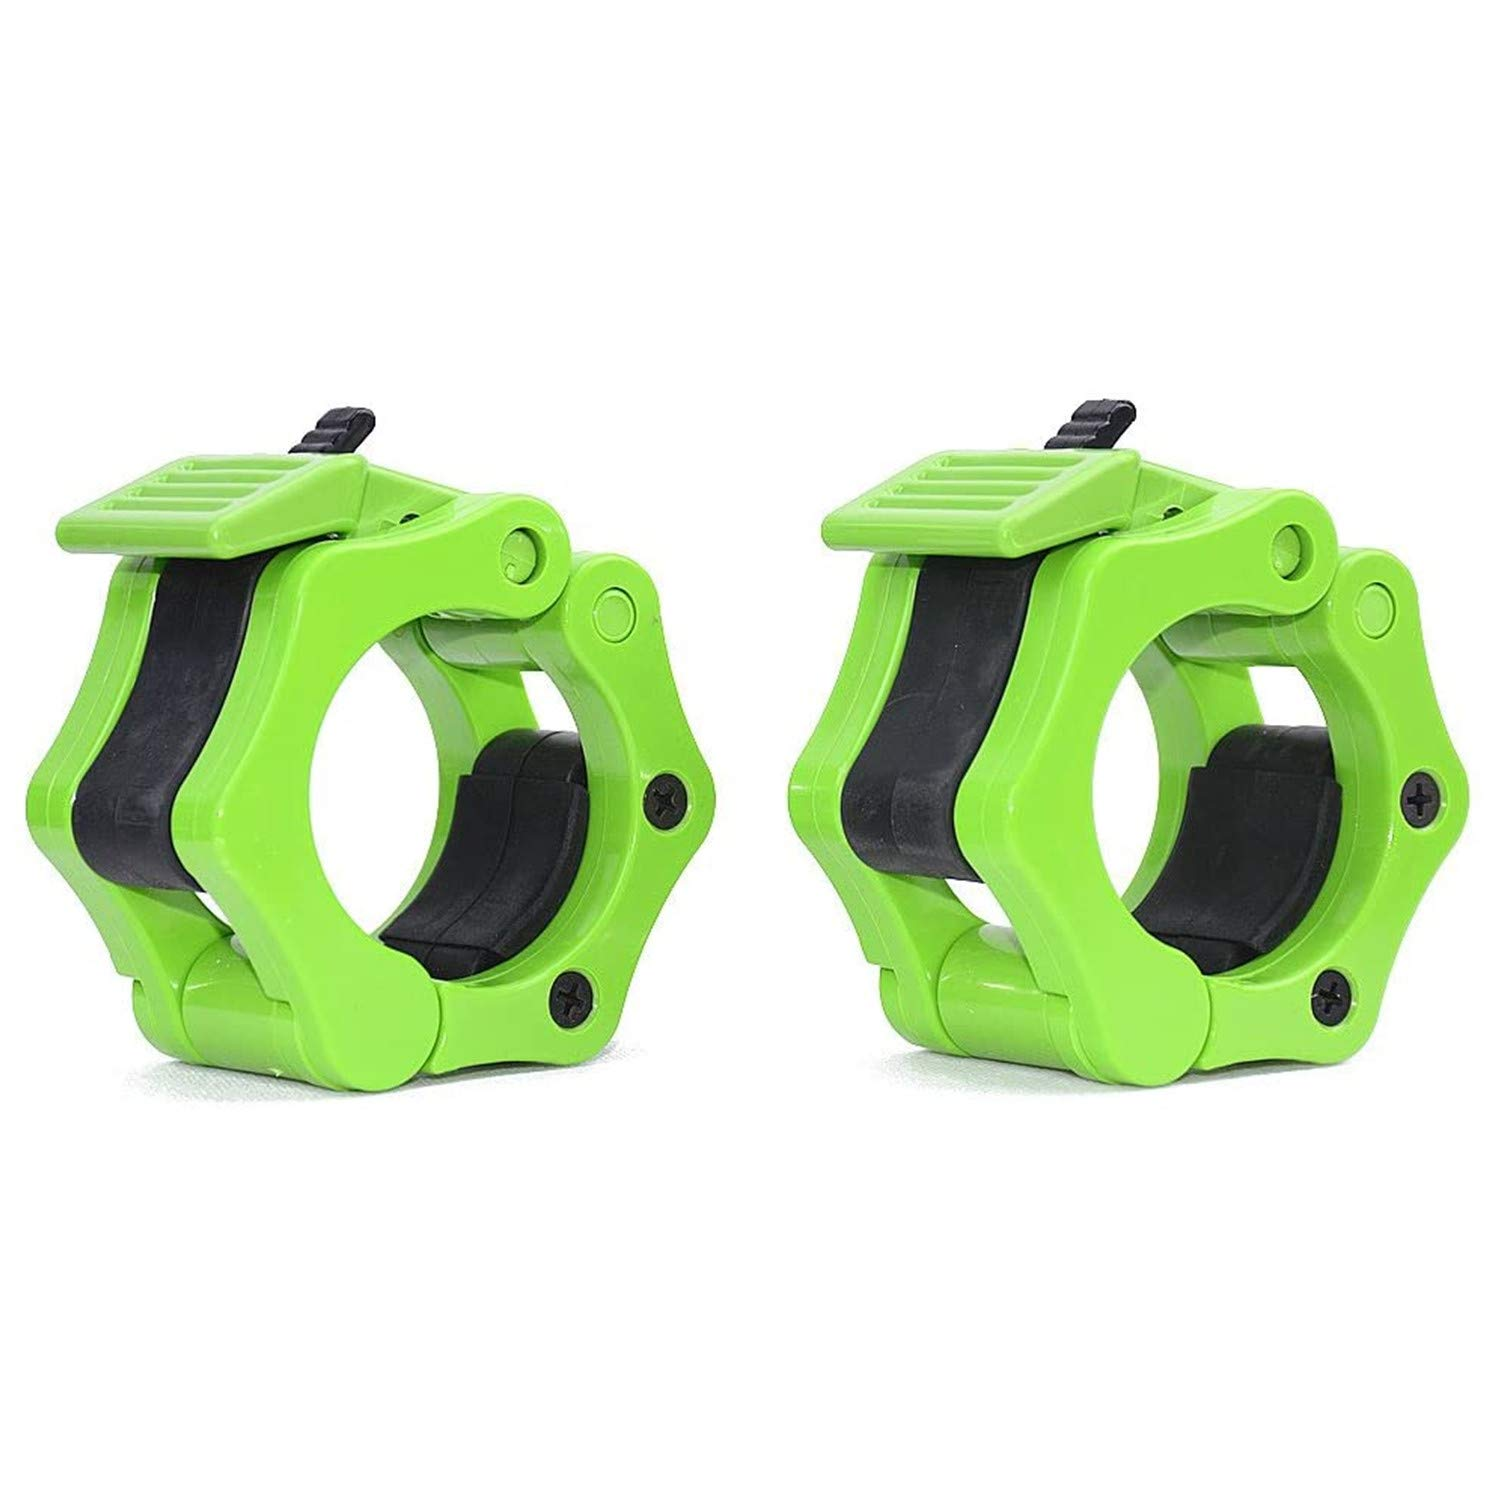 """TOFEIC 2"""" Olympic Size Quick Release Barbell Clamps 2 inch Weights Bar Bumper Plates Lock Collars Clips Great for Gym Crossfit Wrokout Muscle Fitness PRO Training"""